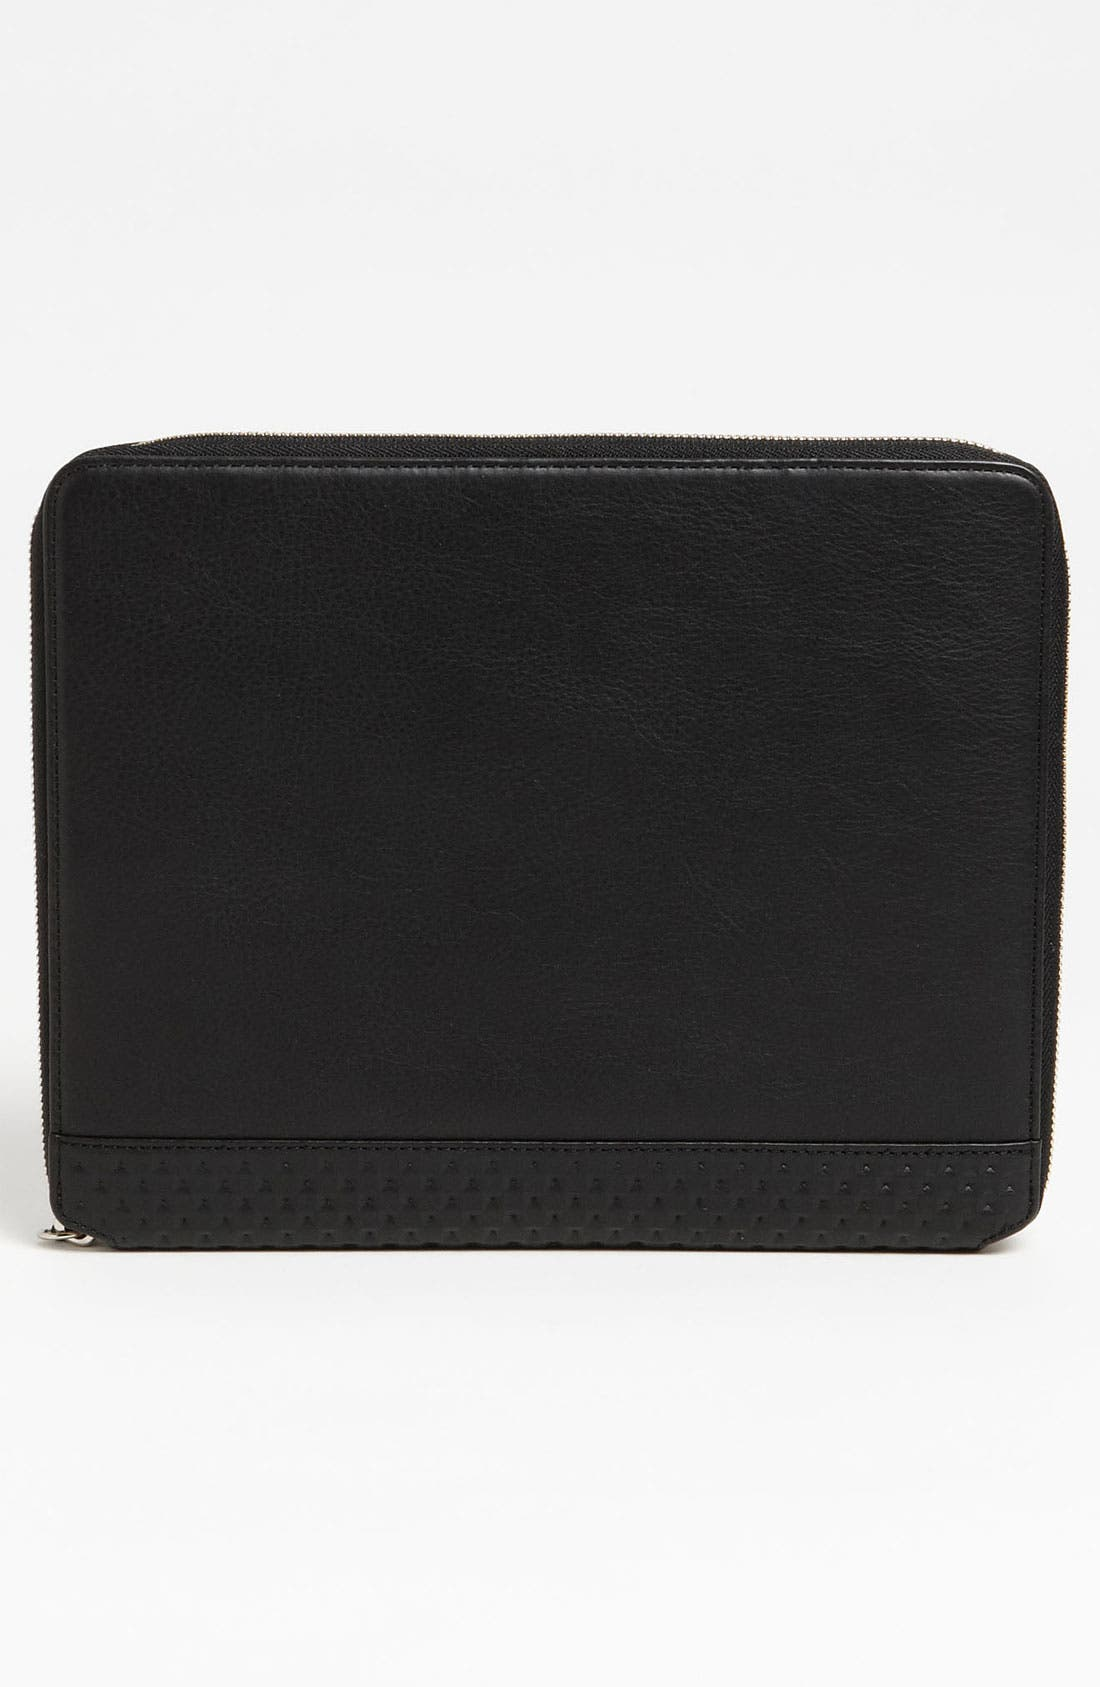 Alternate Image 1 Selected - WANT Les Essentiels de la Vie 'Narita' iPad Case